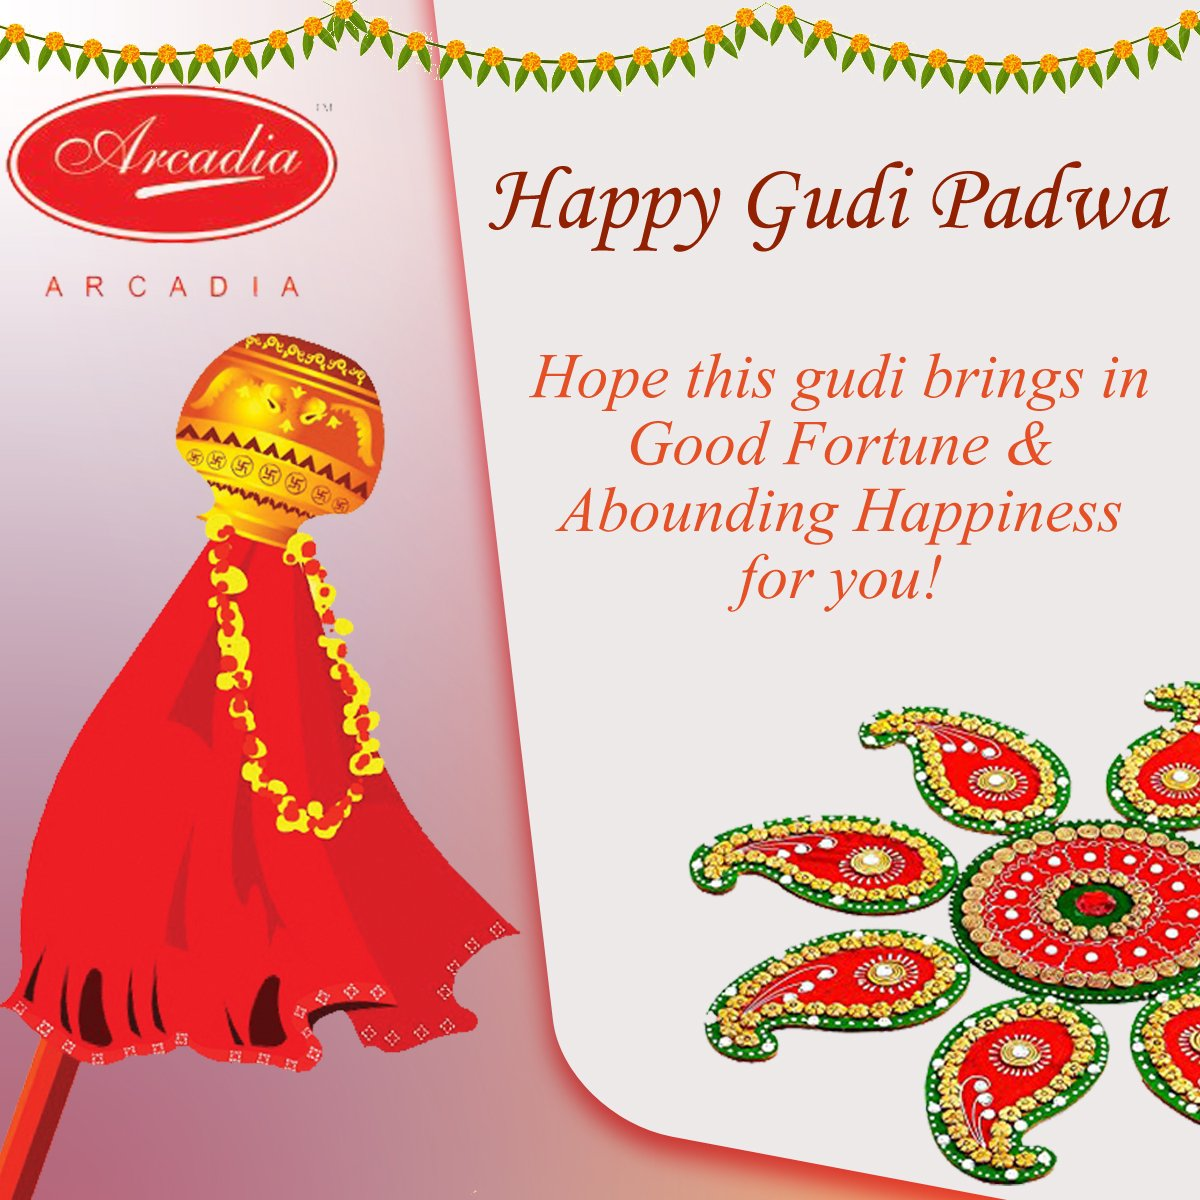 Happy #GudiPadwa Hope this #Gudi Brings in Good Fortune &amp; Abounding #Happiness for you. #GudiPadwa2017 #HappyNewYear2017 #HappyNewYear<br>http://pic.twitter.com/EeYnhyHNrc